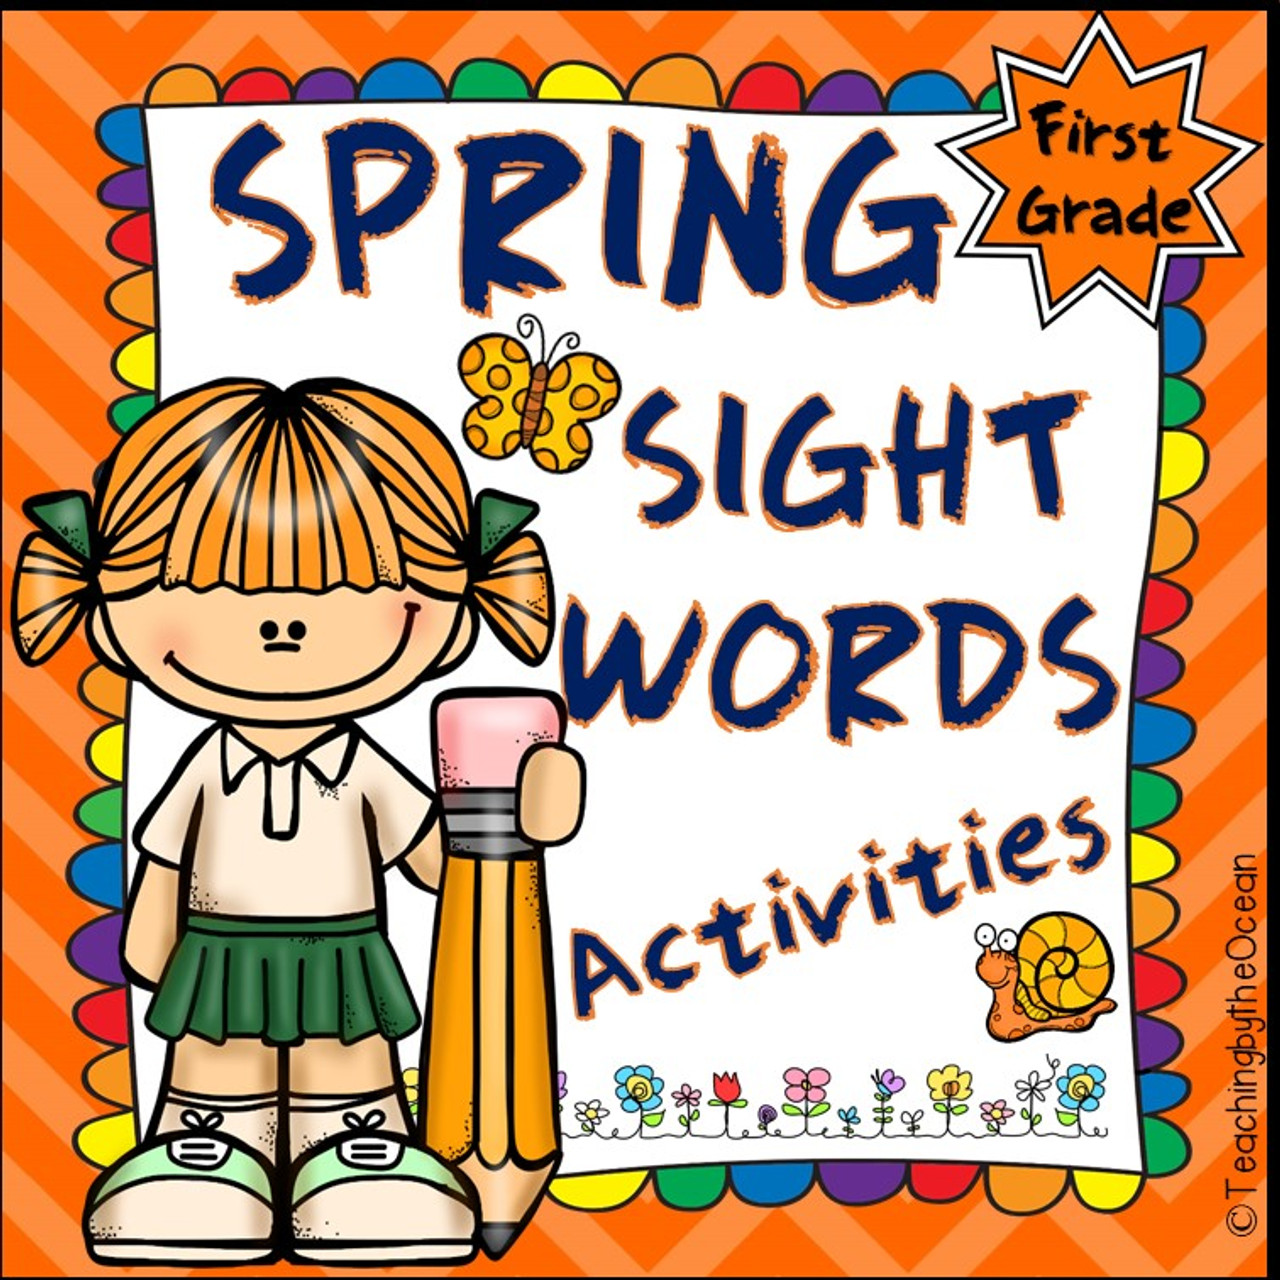 medium resolution of First Grade Sight Words Worksheets - Spring Themed - Amped Up Learning